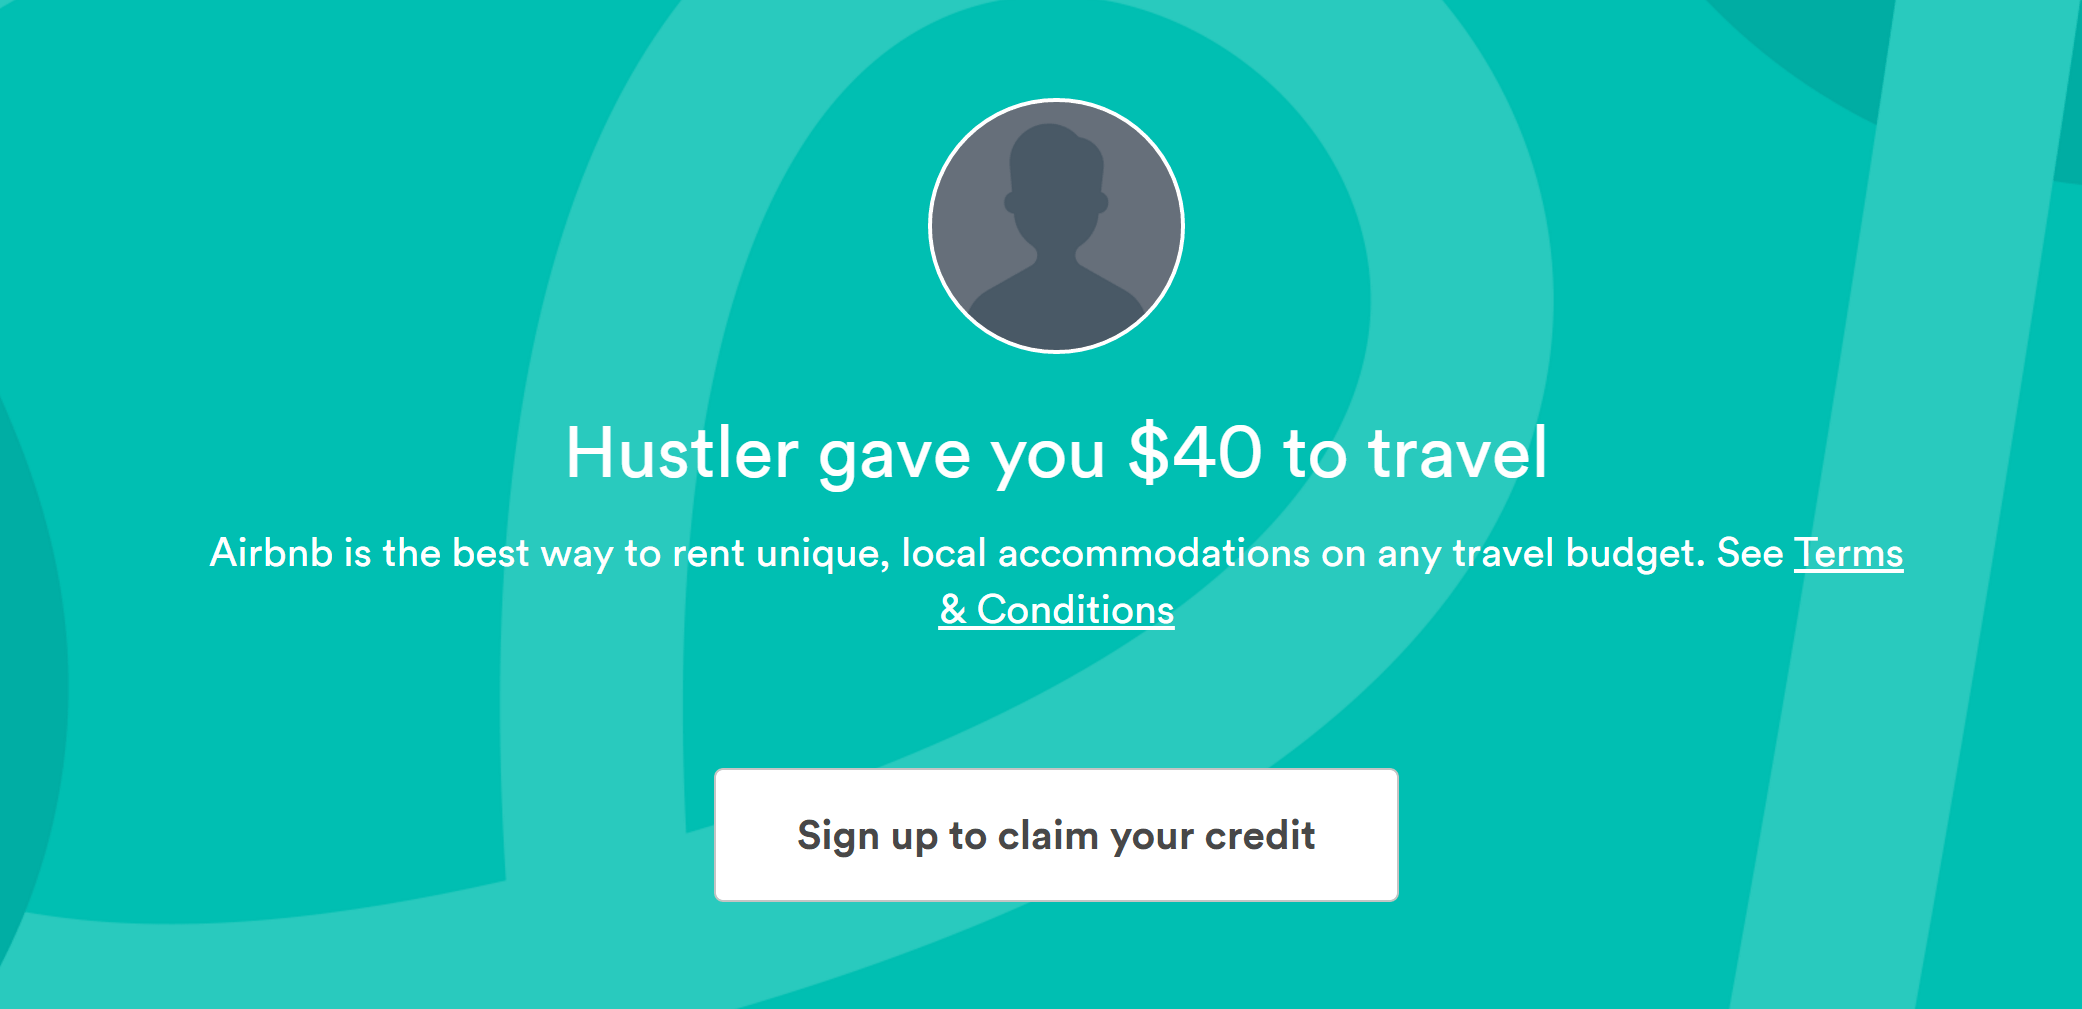 AirBnB Referral Promotion: Earn Up To $55 In Travel Credits